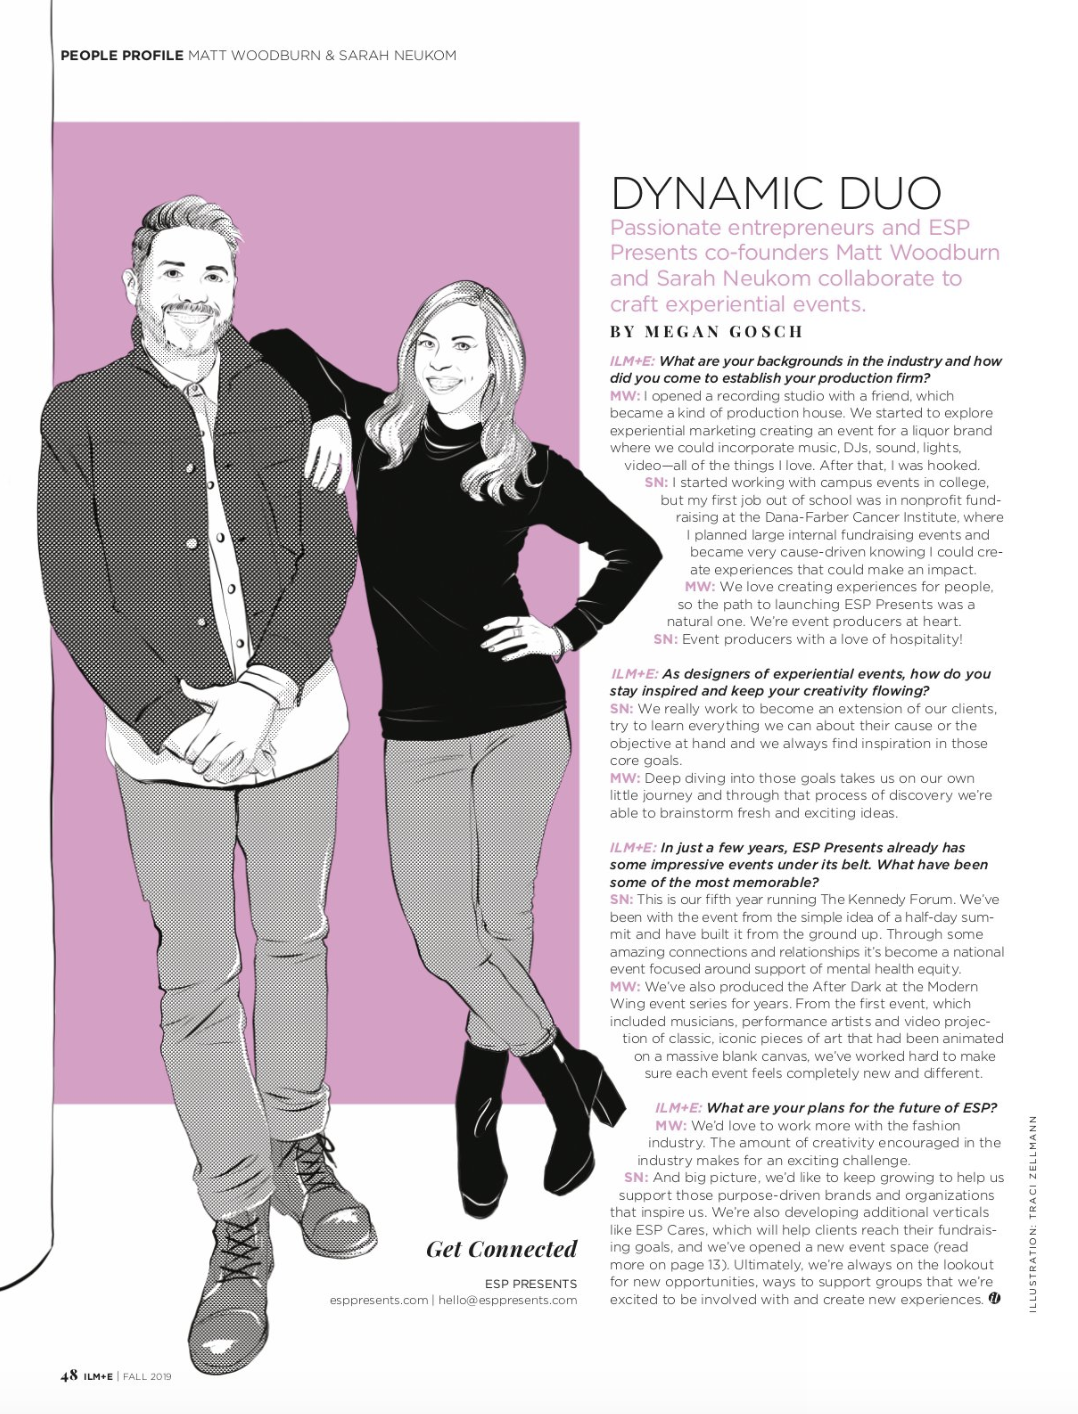 ILLINOIS MEETINGS & EVENTS - Dynamic Duo feature